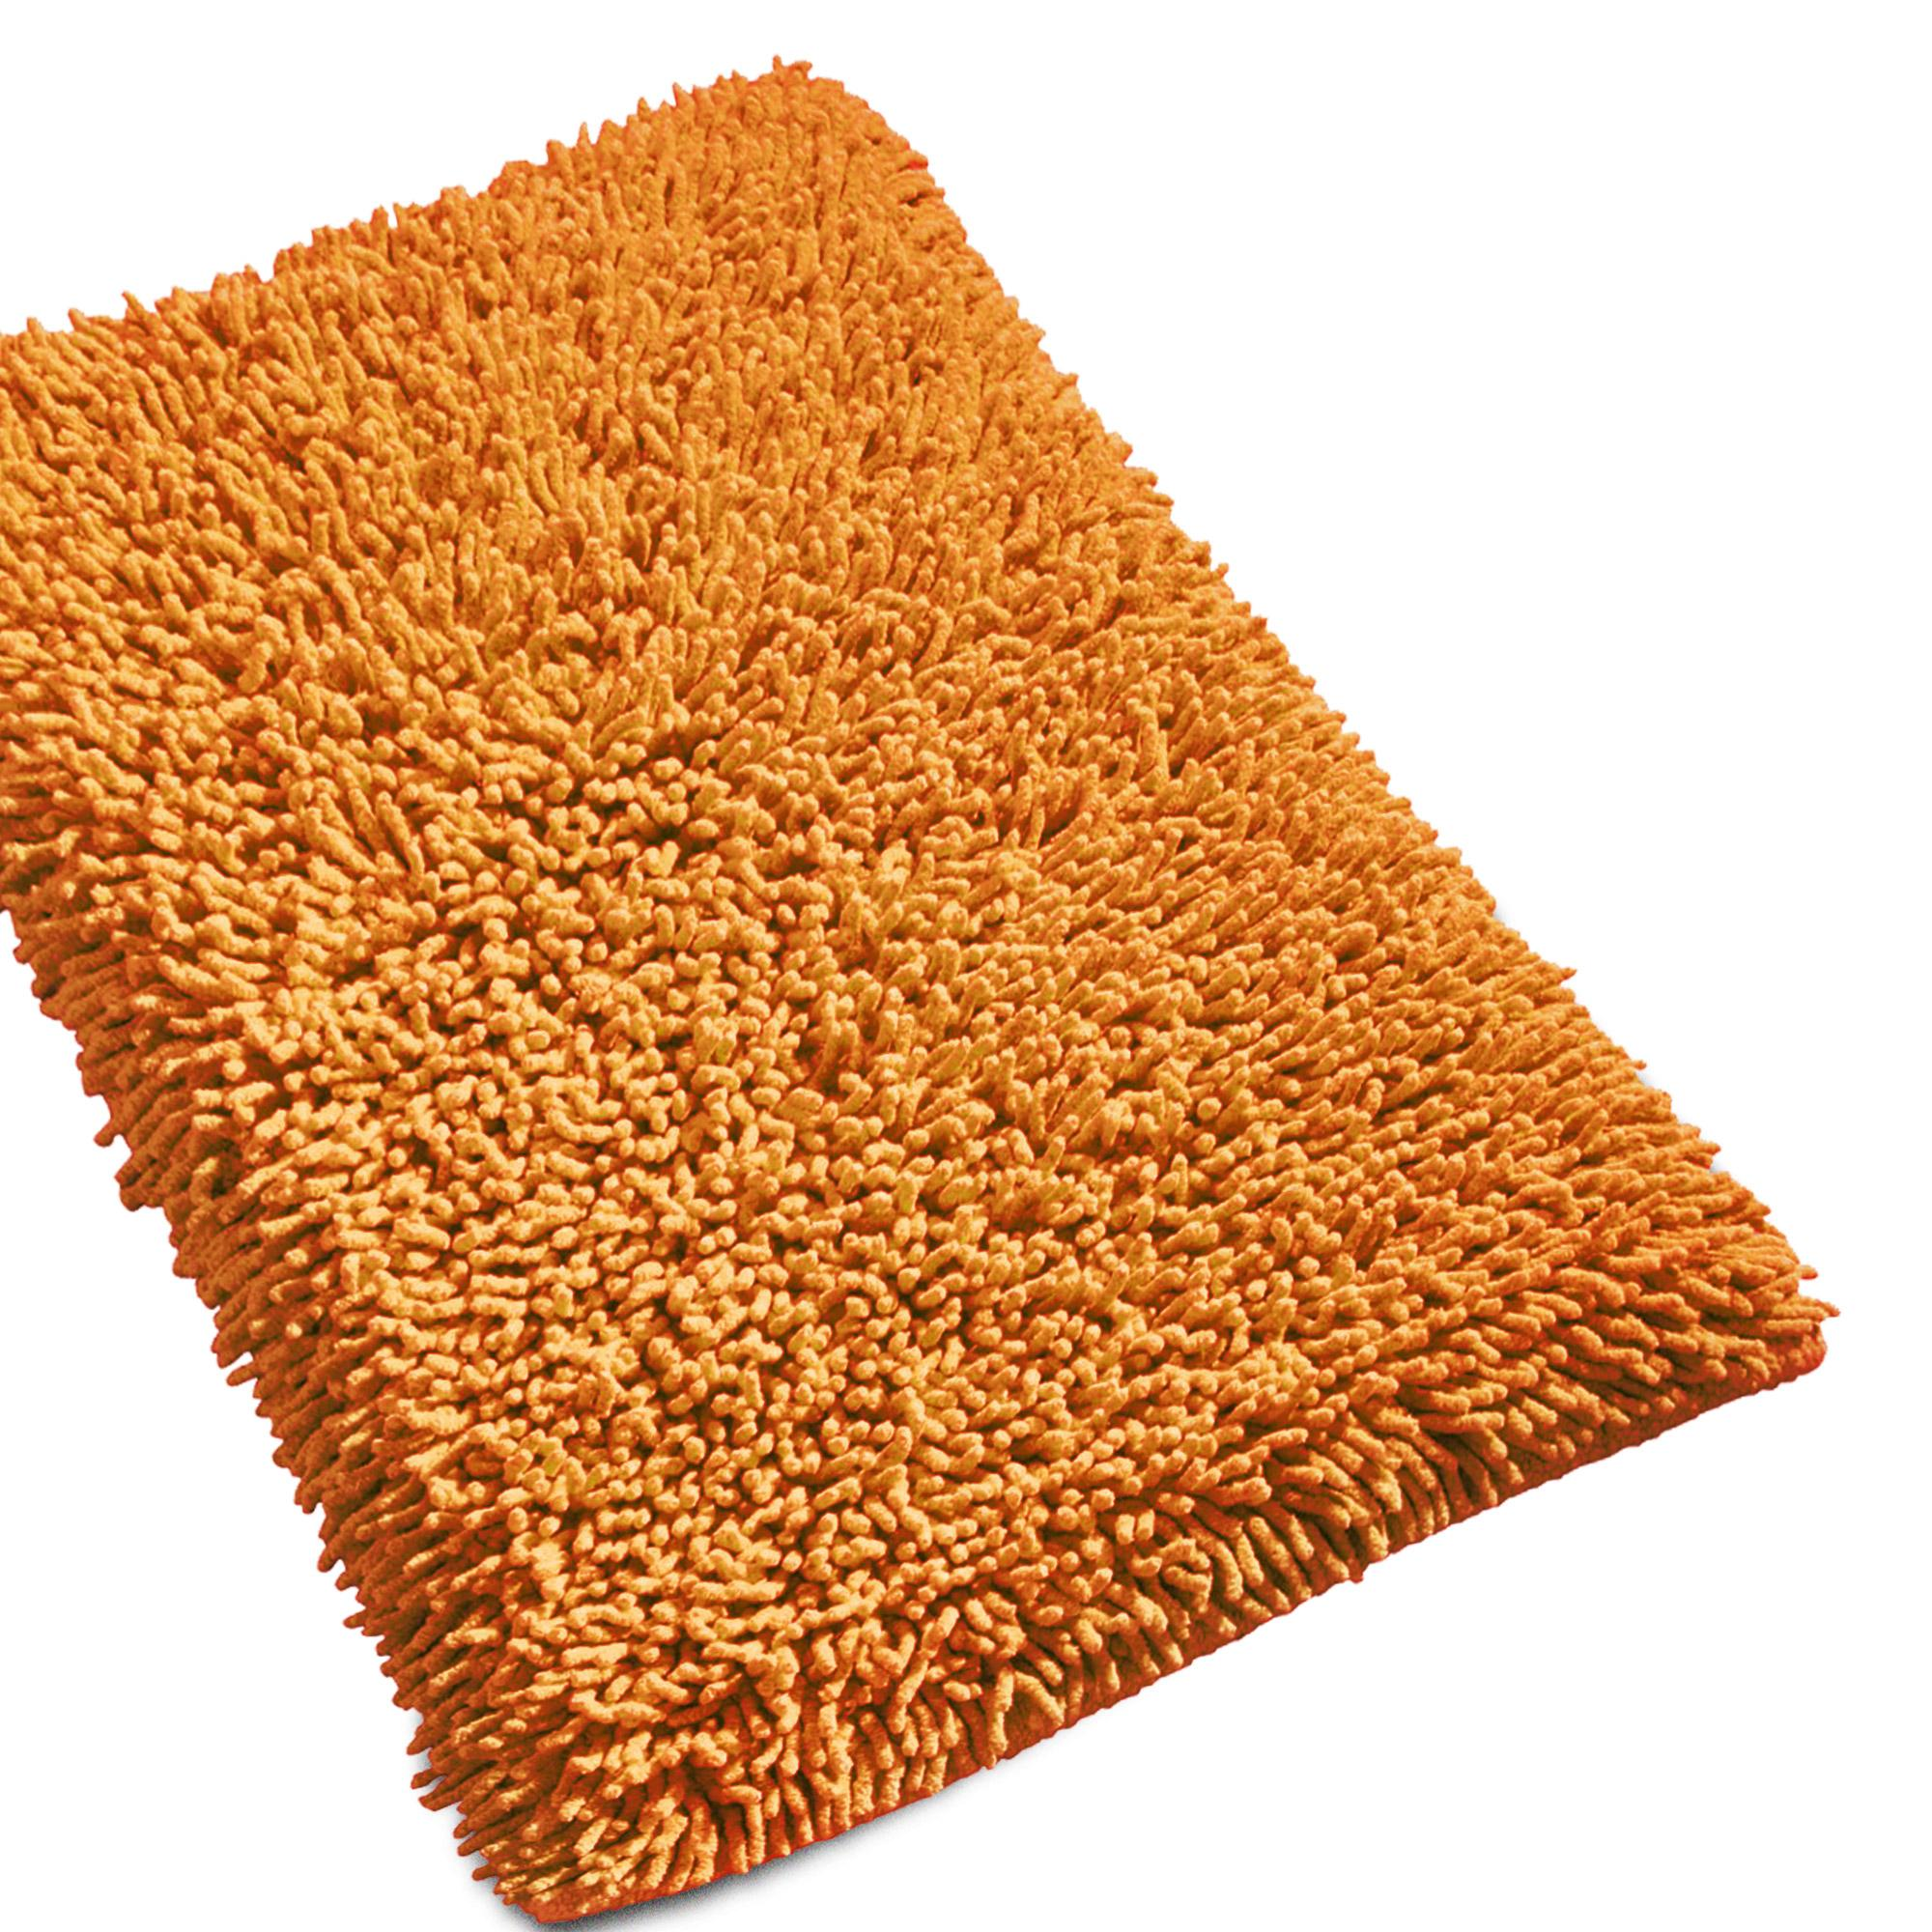 tapis de bain 50x80 chenille orange 1800g m2 ebay. Black Bedroom Furniture Sets. Home Design Ideas